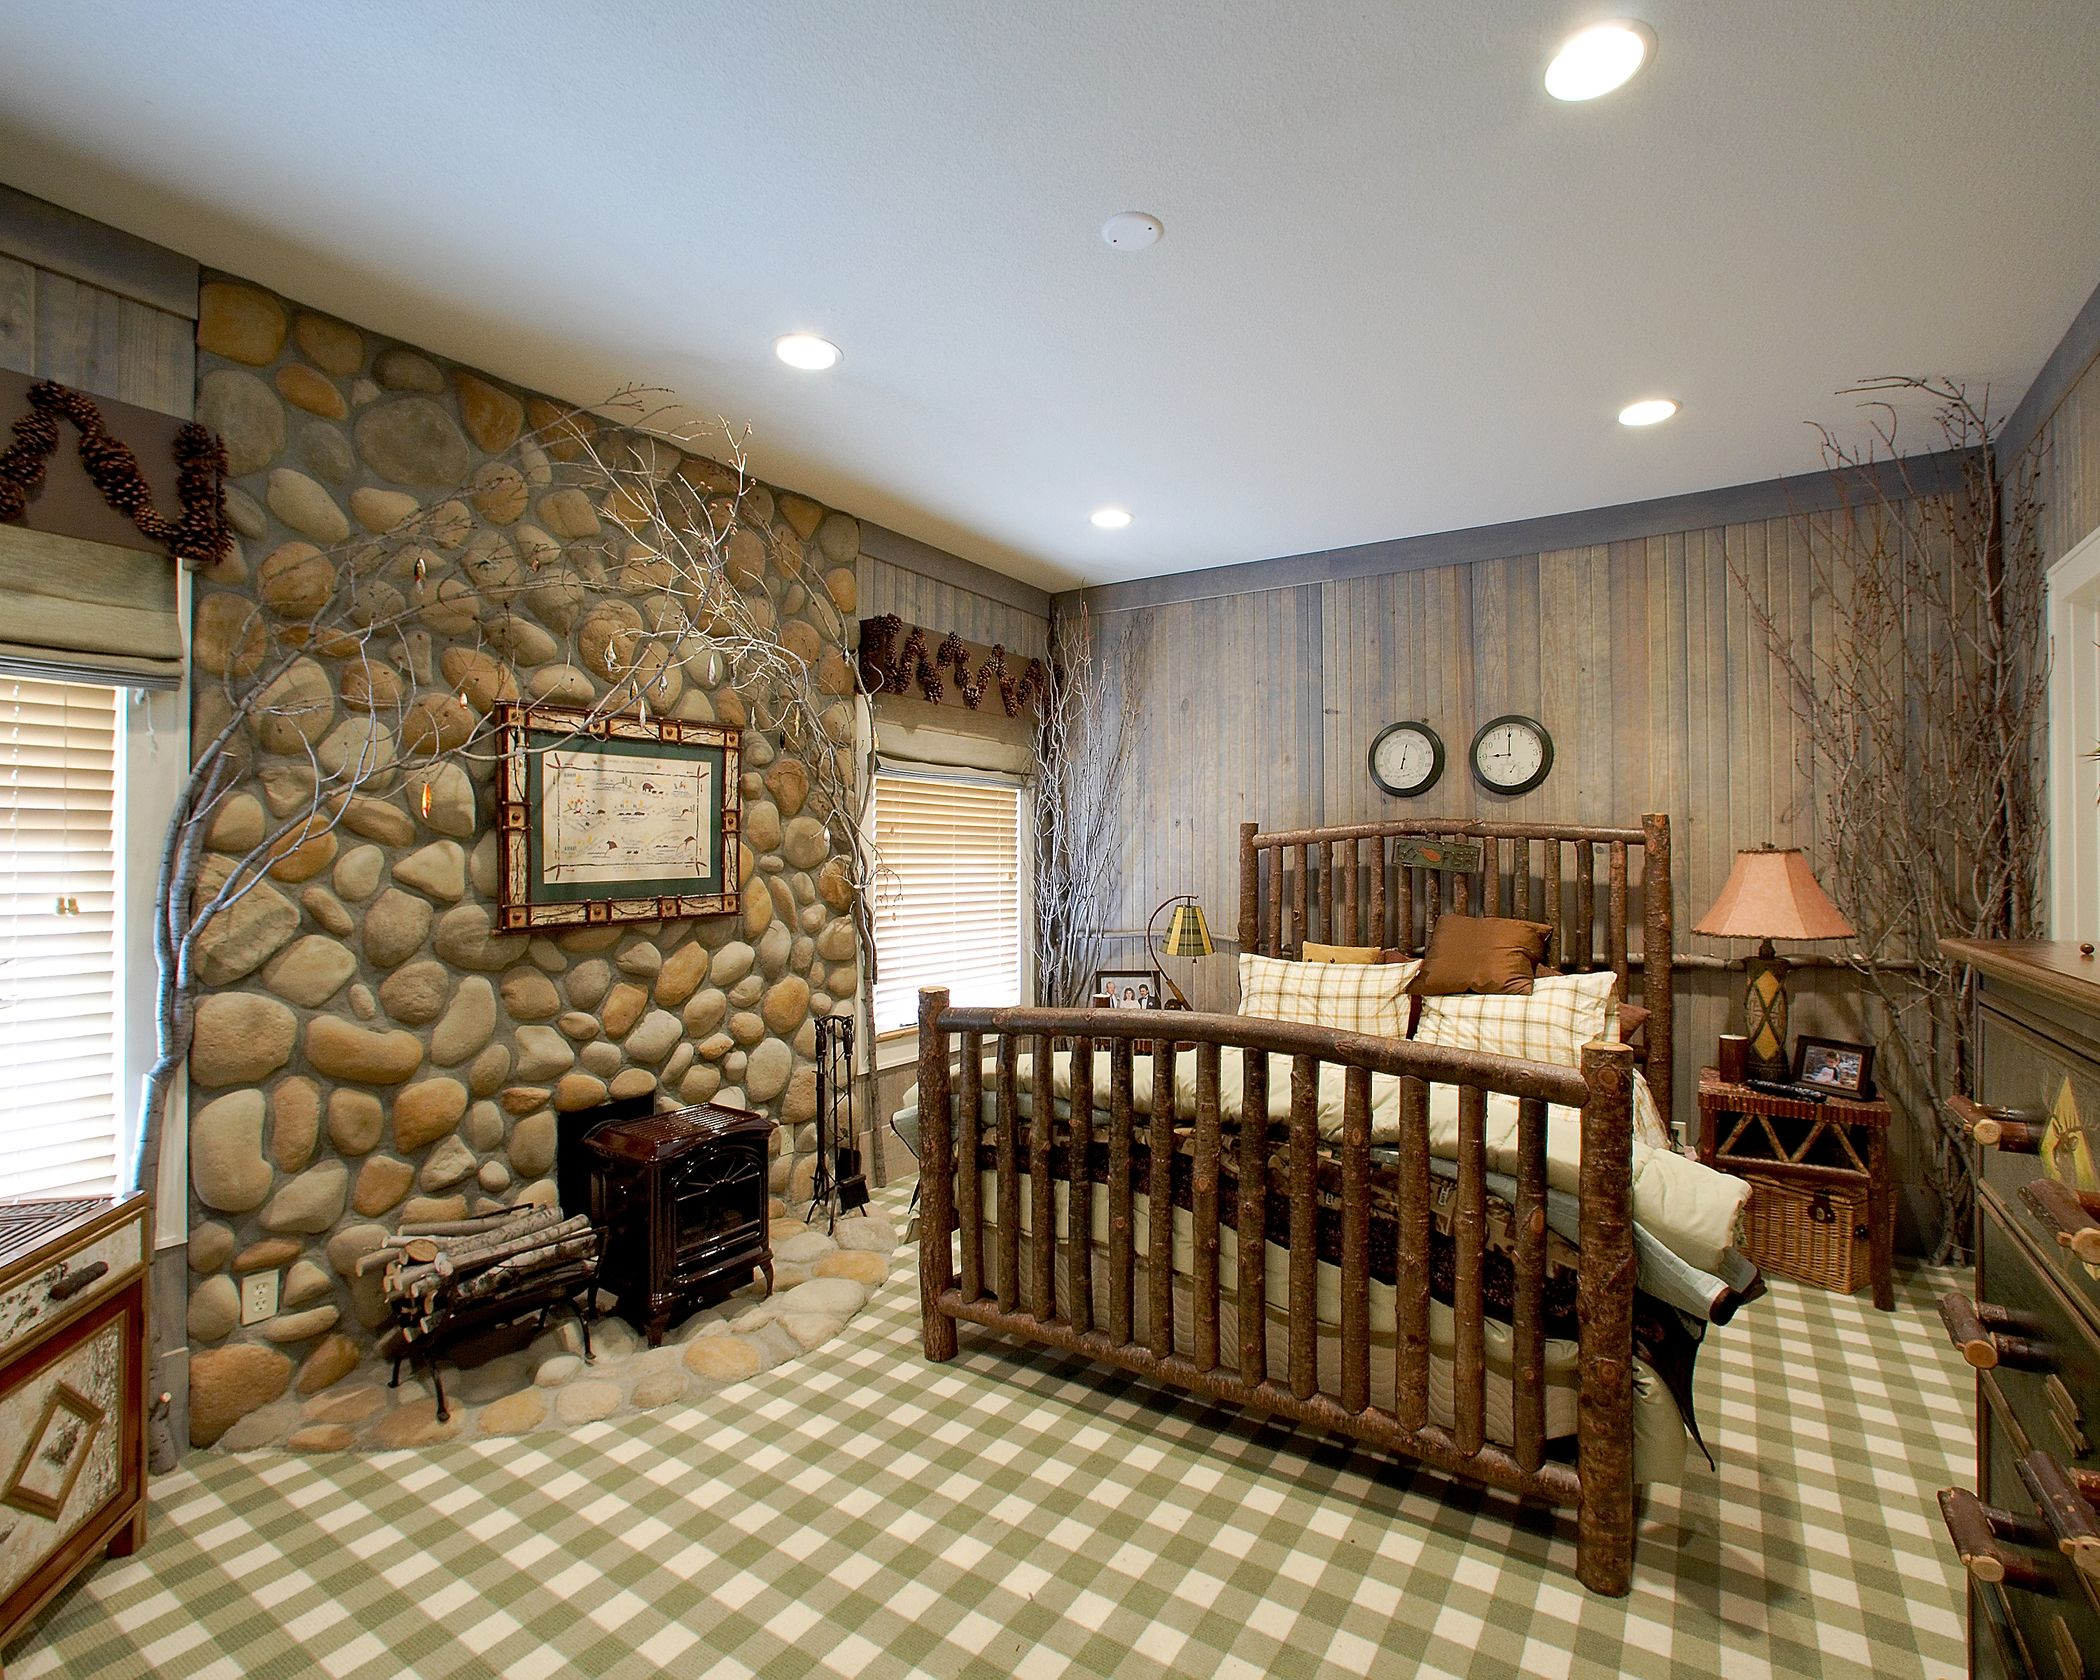 Extreme Makeover Home Edition Bedrooms What Happens When They Want To Change Things Up A